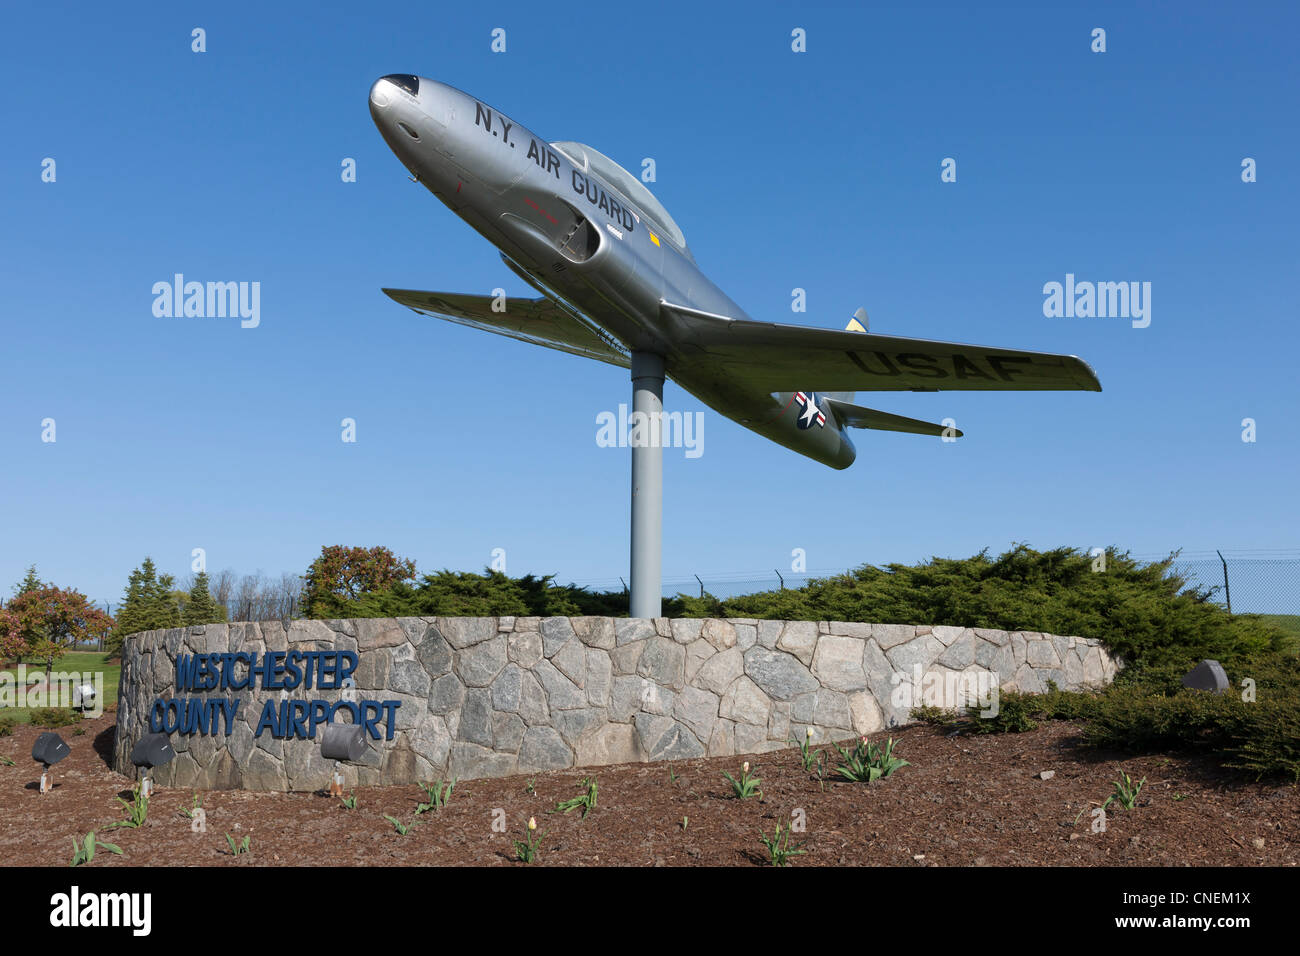 New York Air National Guard Lockheed T-33 at the entrance to the Westchester County Airport near White Plains, New - Stock Image